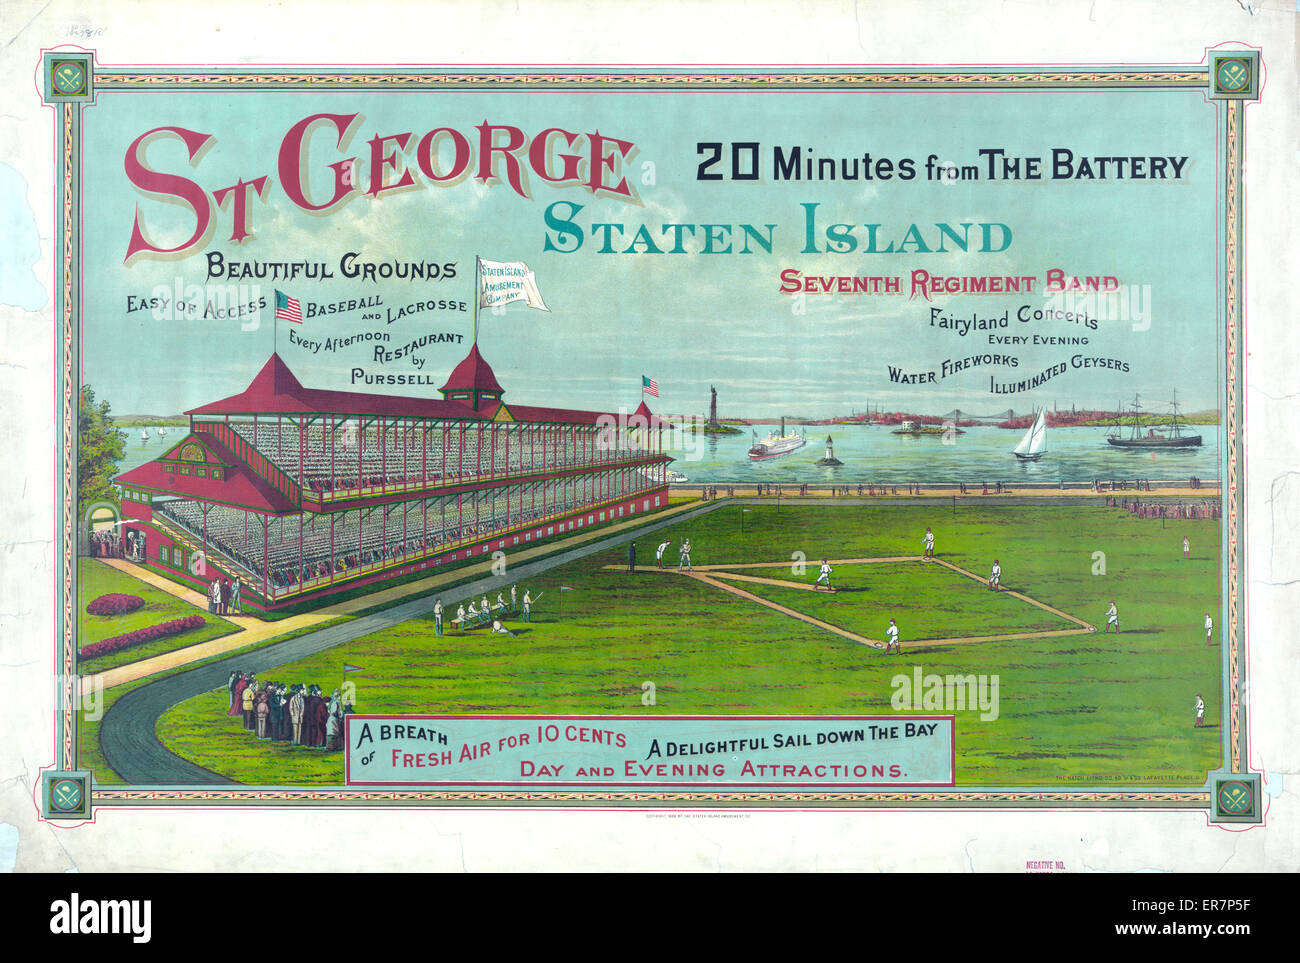 St George Staten Island 20 minutes from the Battery. Print showing a baseball game in progress before crowded grandstand - Stock Image